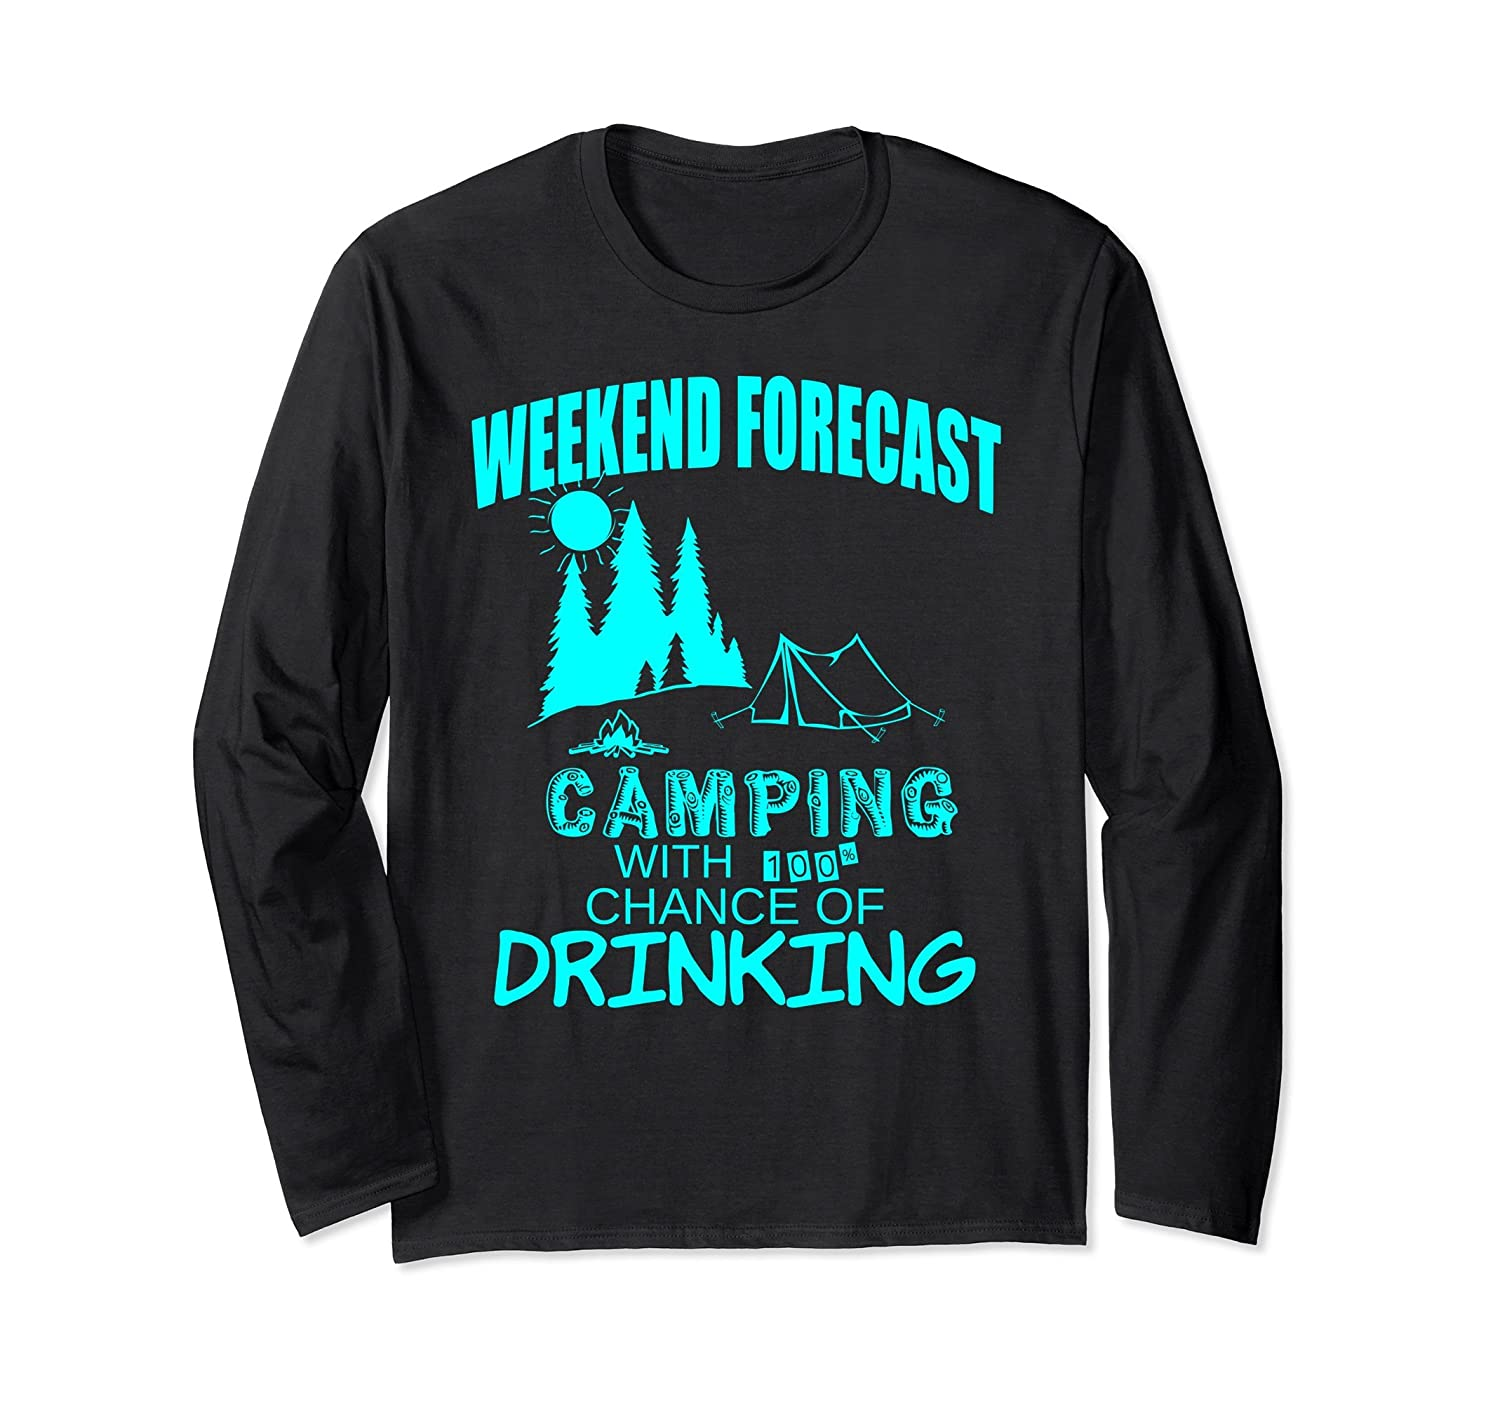 Weekend Forecast Camping With 100% Chance Of Drinking Shirt-ln